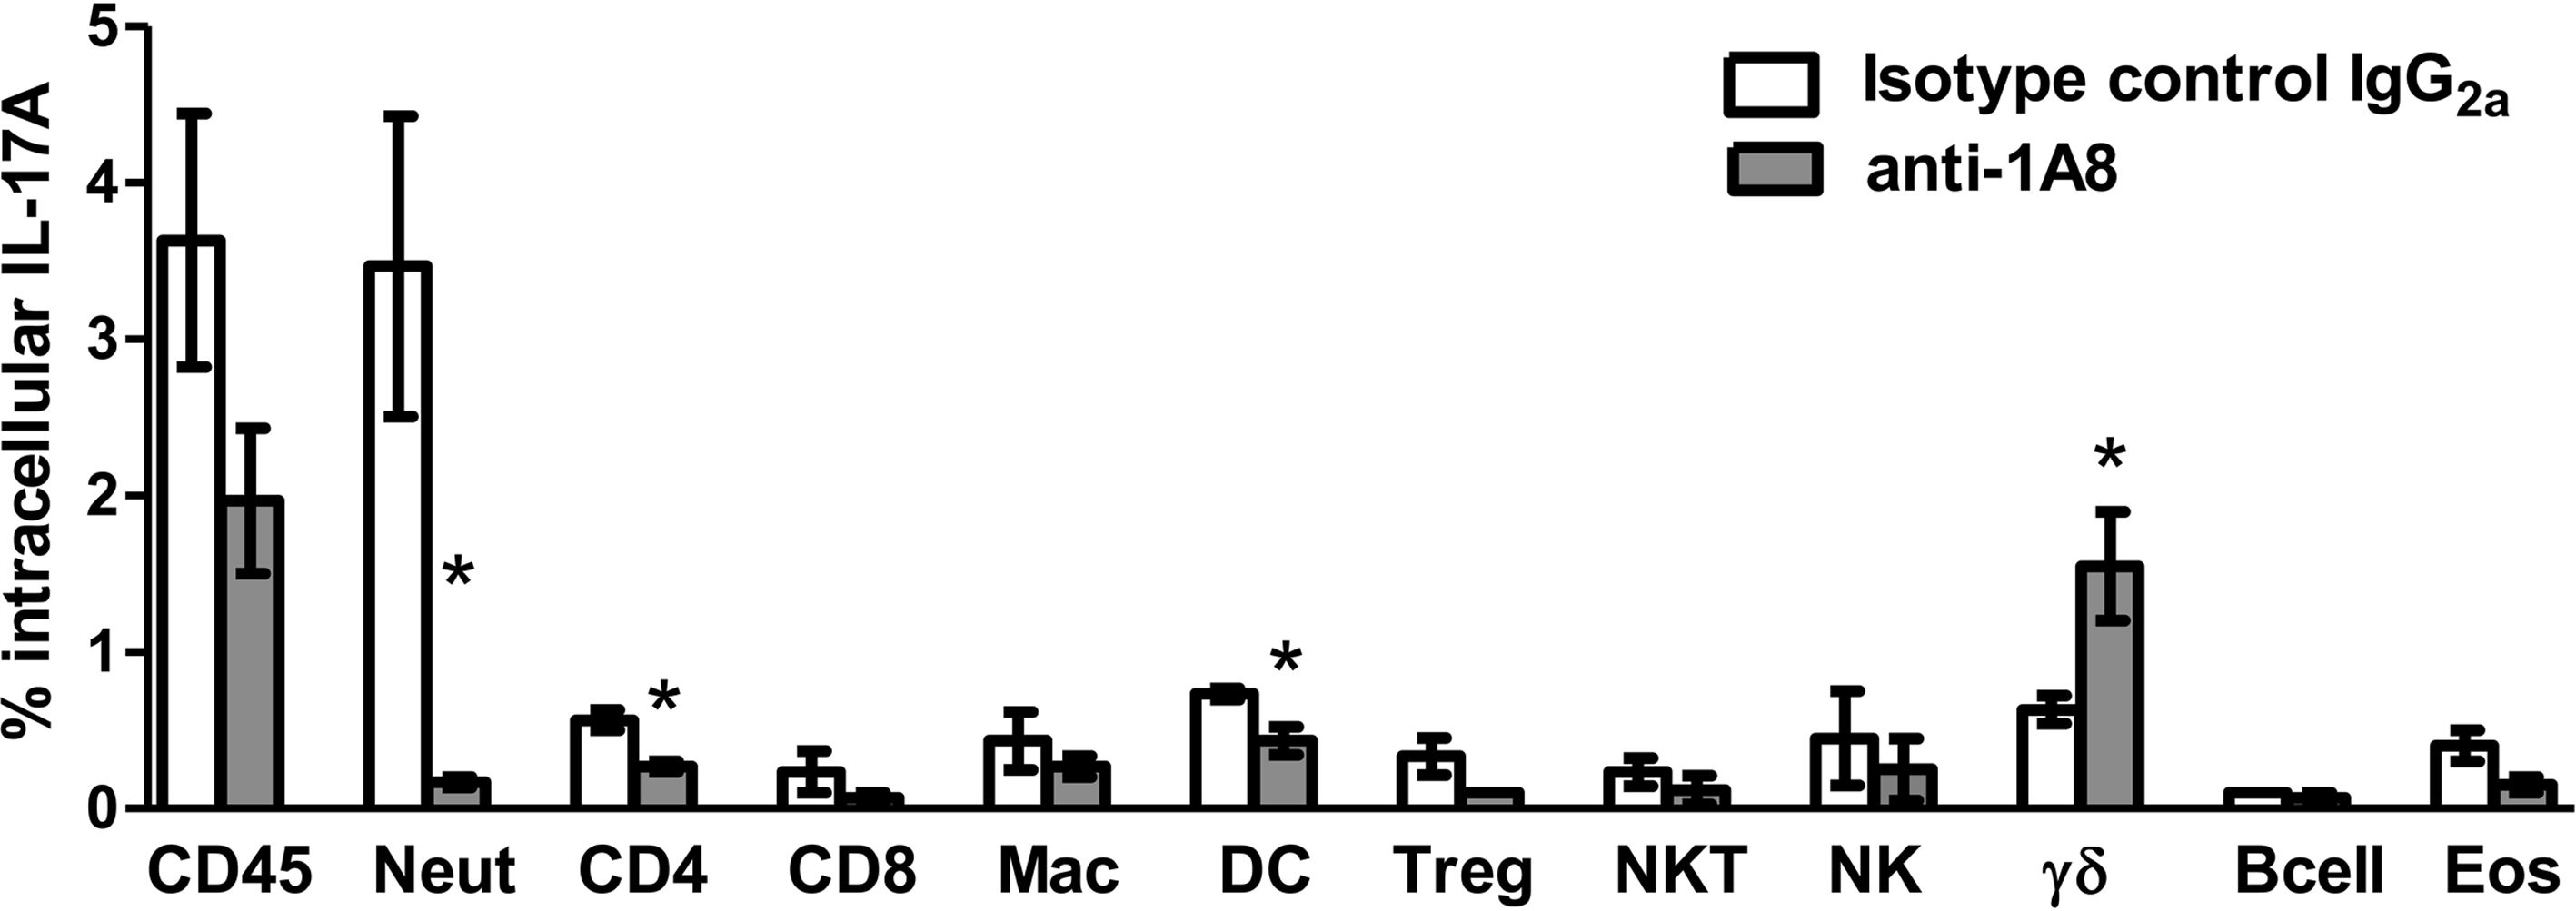 http://static-content.springer.com/image/art%3A10.1186%2F1471-2172-13-65/MediaObjects/12865_2012_Article_483_Fig2_HTML.jpg